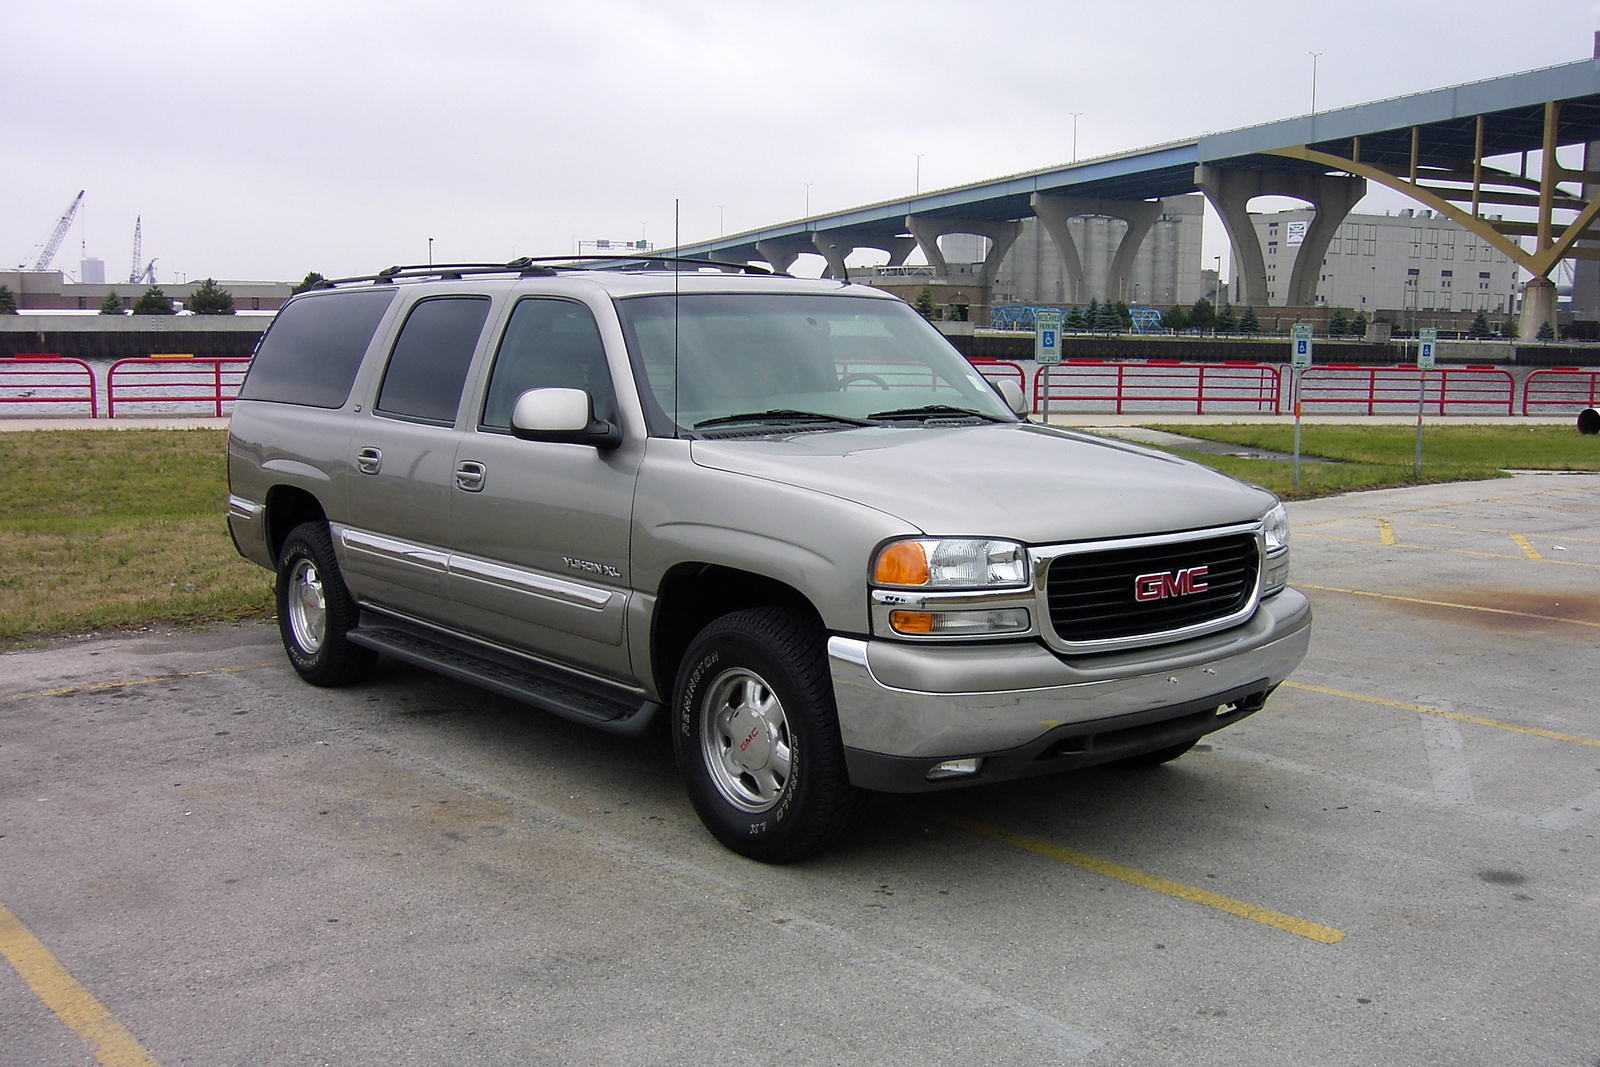 2005 Gmc Yukon Xl Overview Cargurus